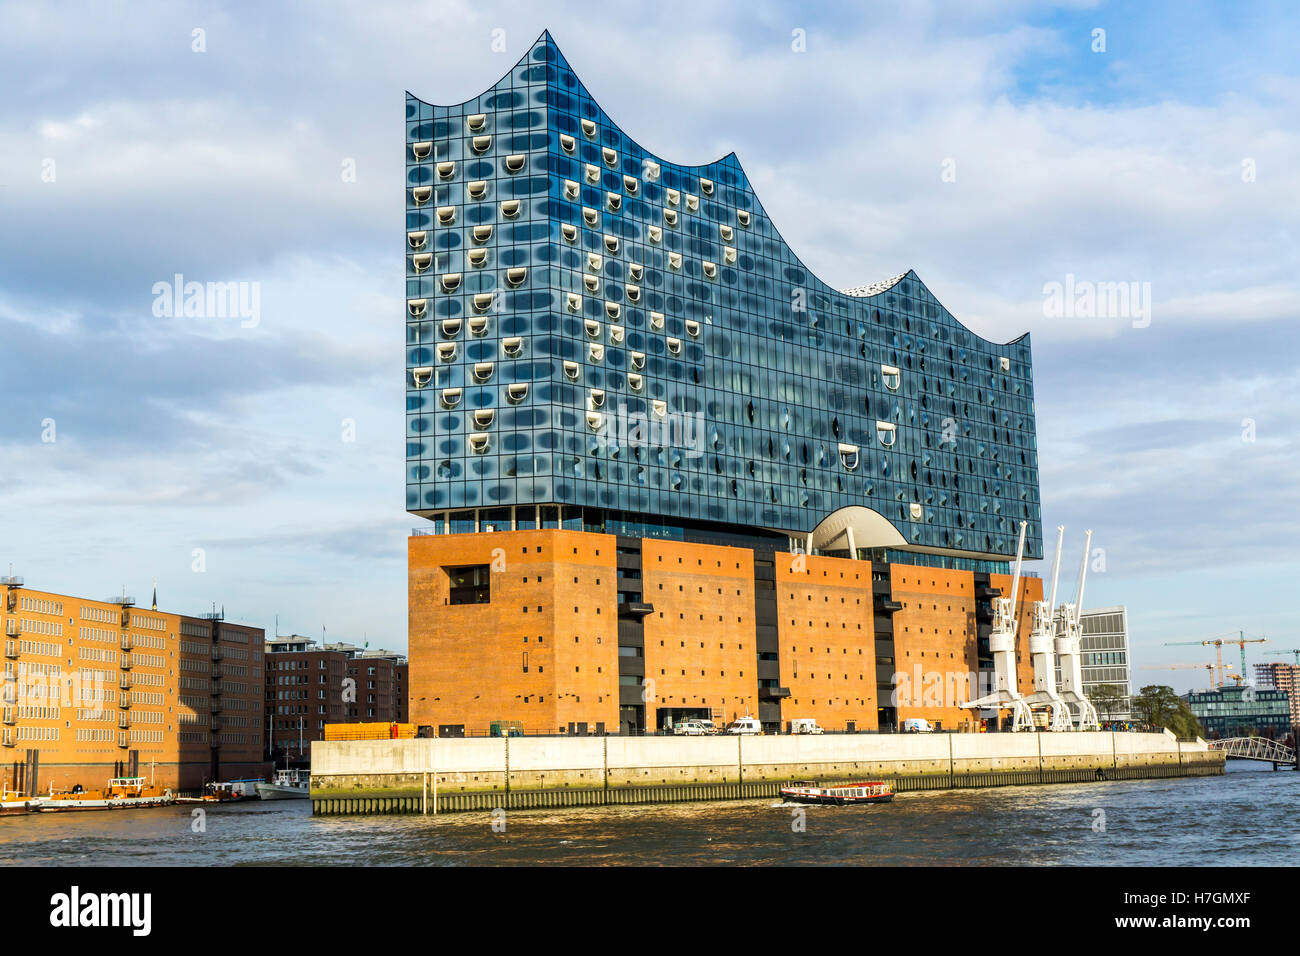 The new Elbphilharmonie, philharmonic concert hall, in the Hafencity district, at the Elbe river in Hamburg, Germany Stock Photo